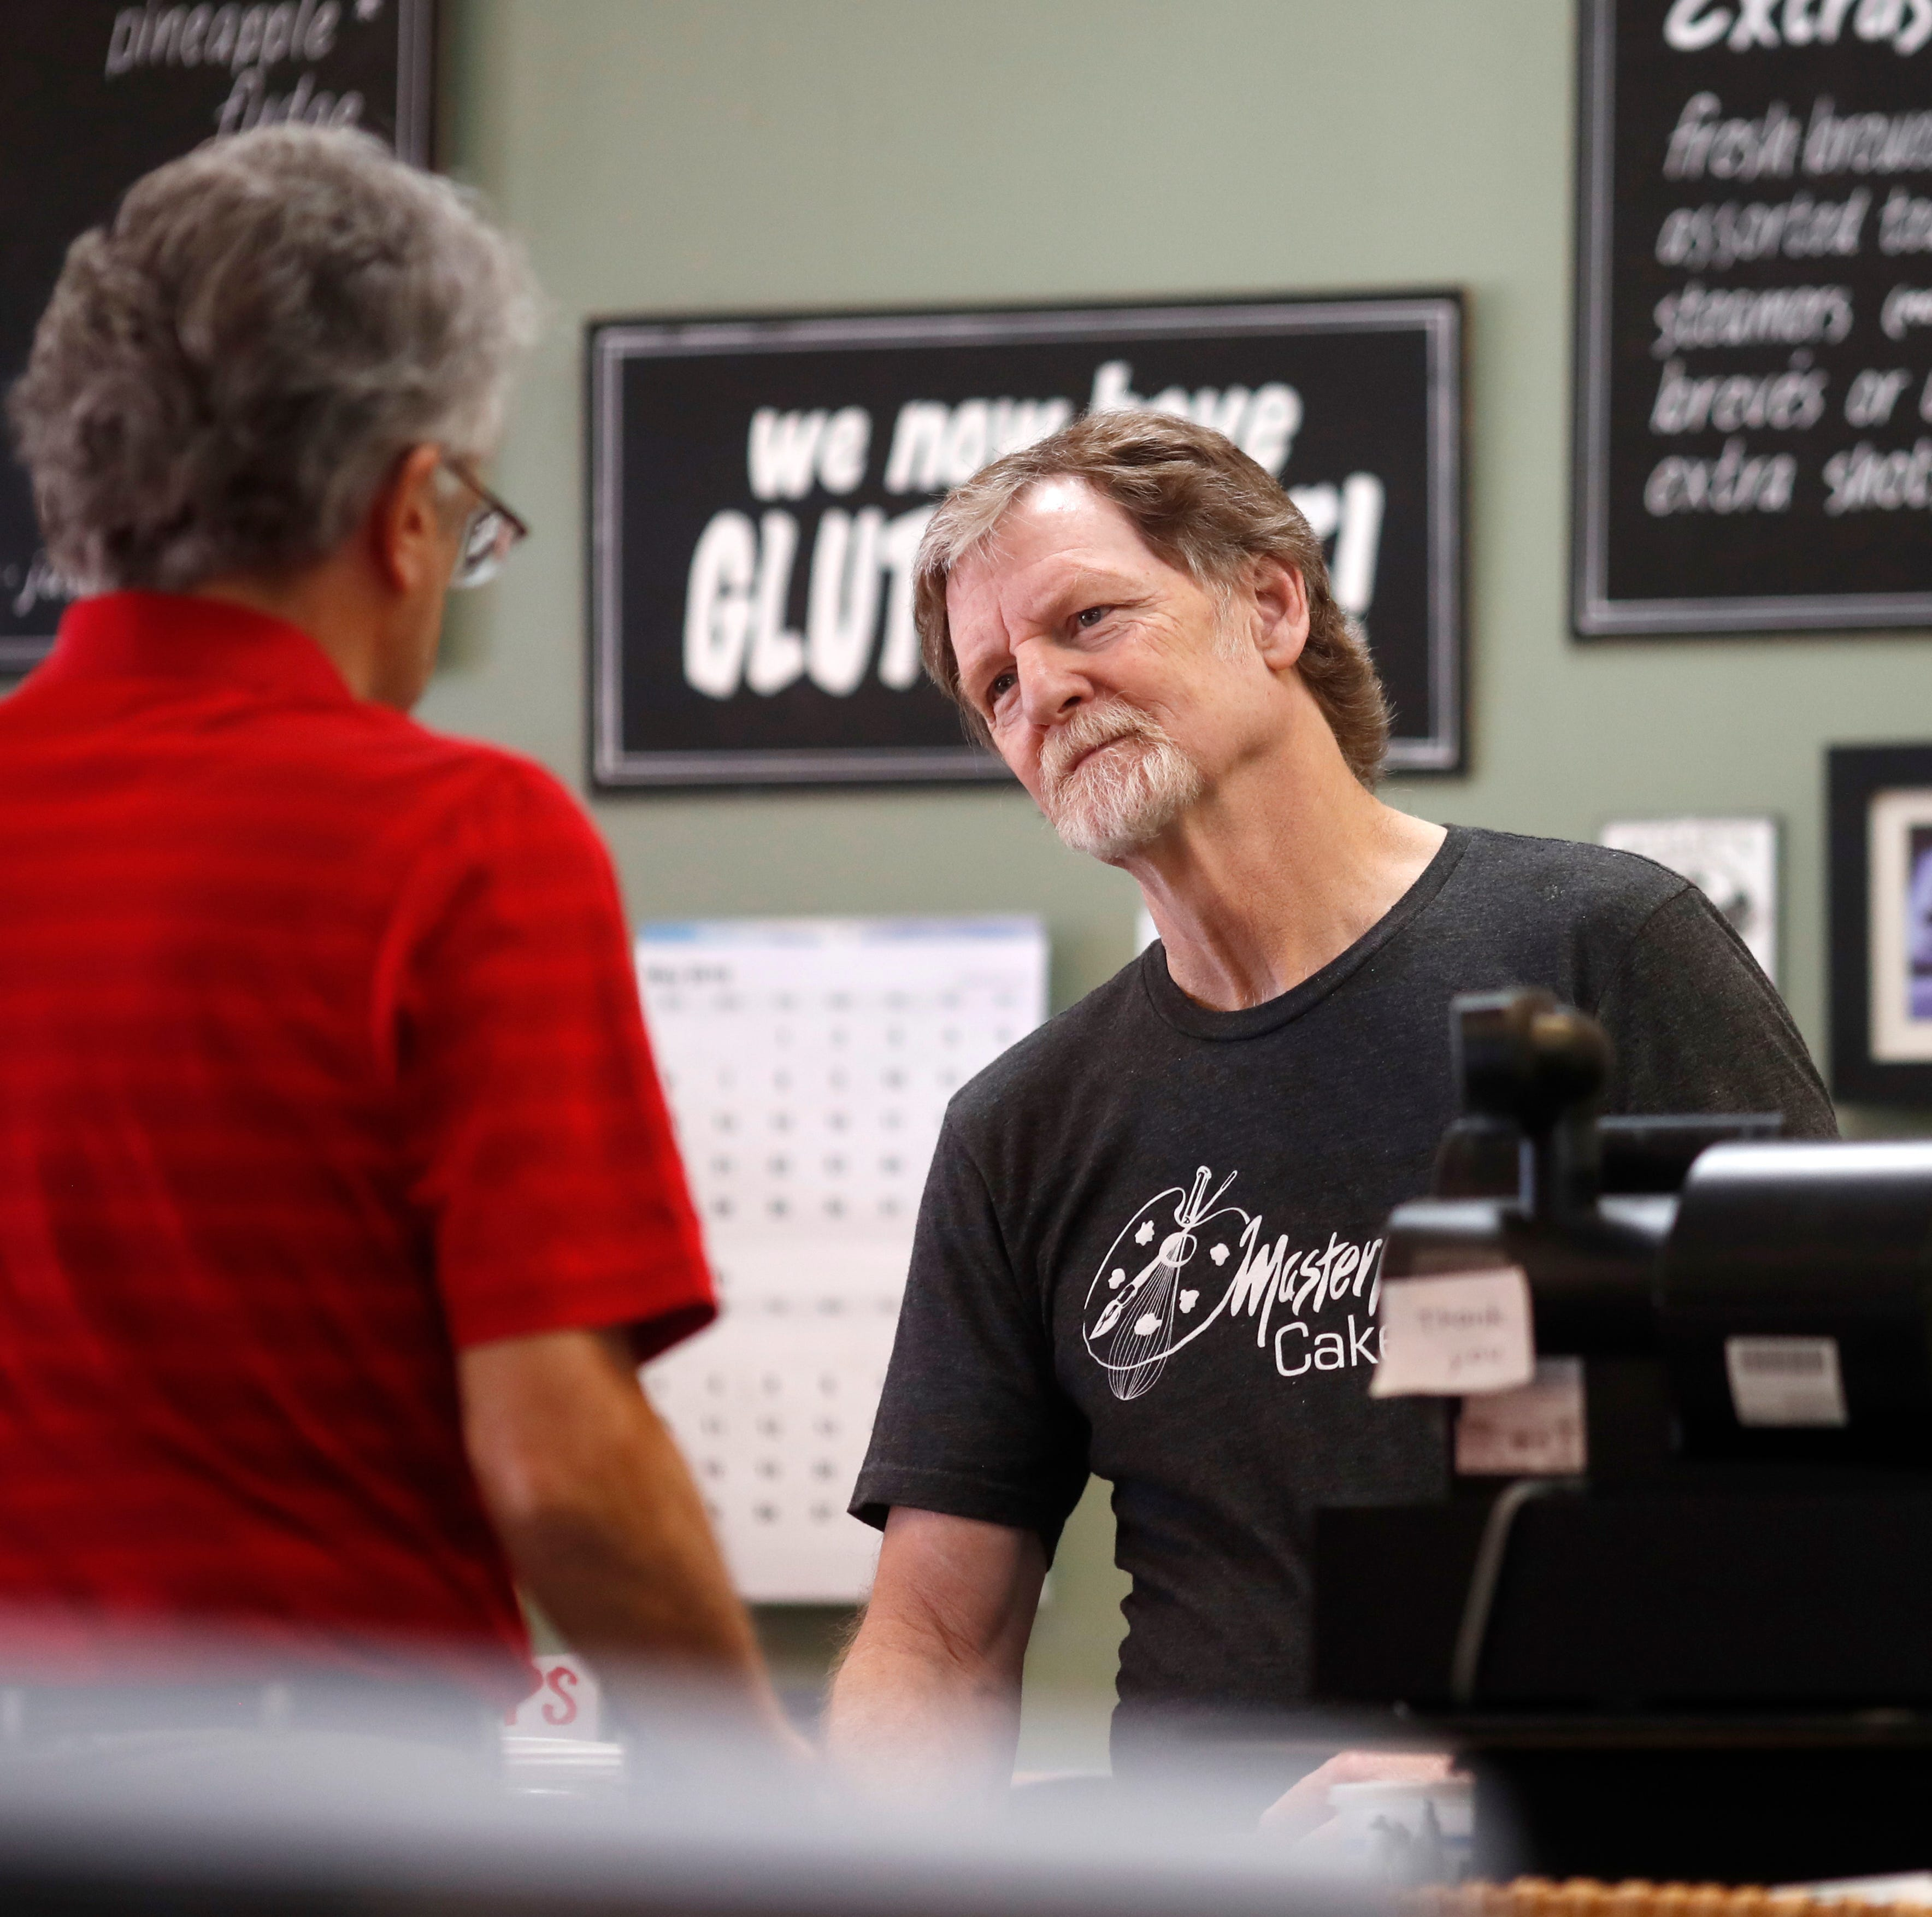 Jack Phillips: Despite my court win, Colorado Civil Rights Commission is coming after me again